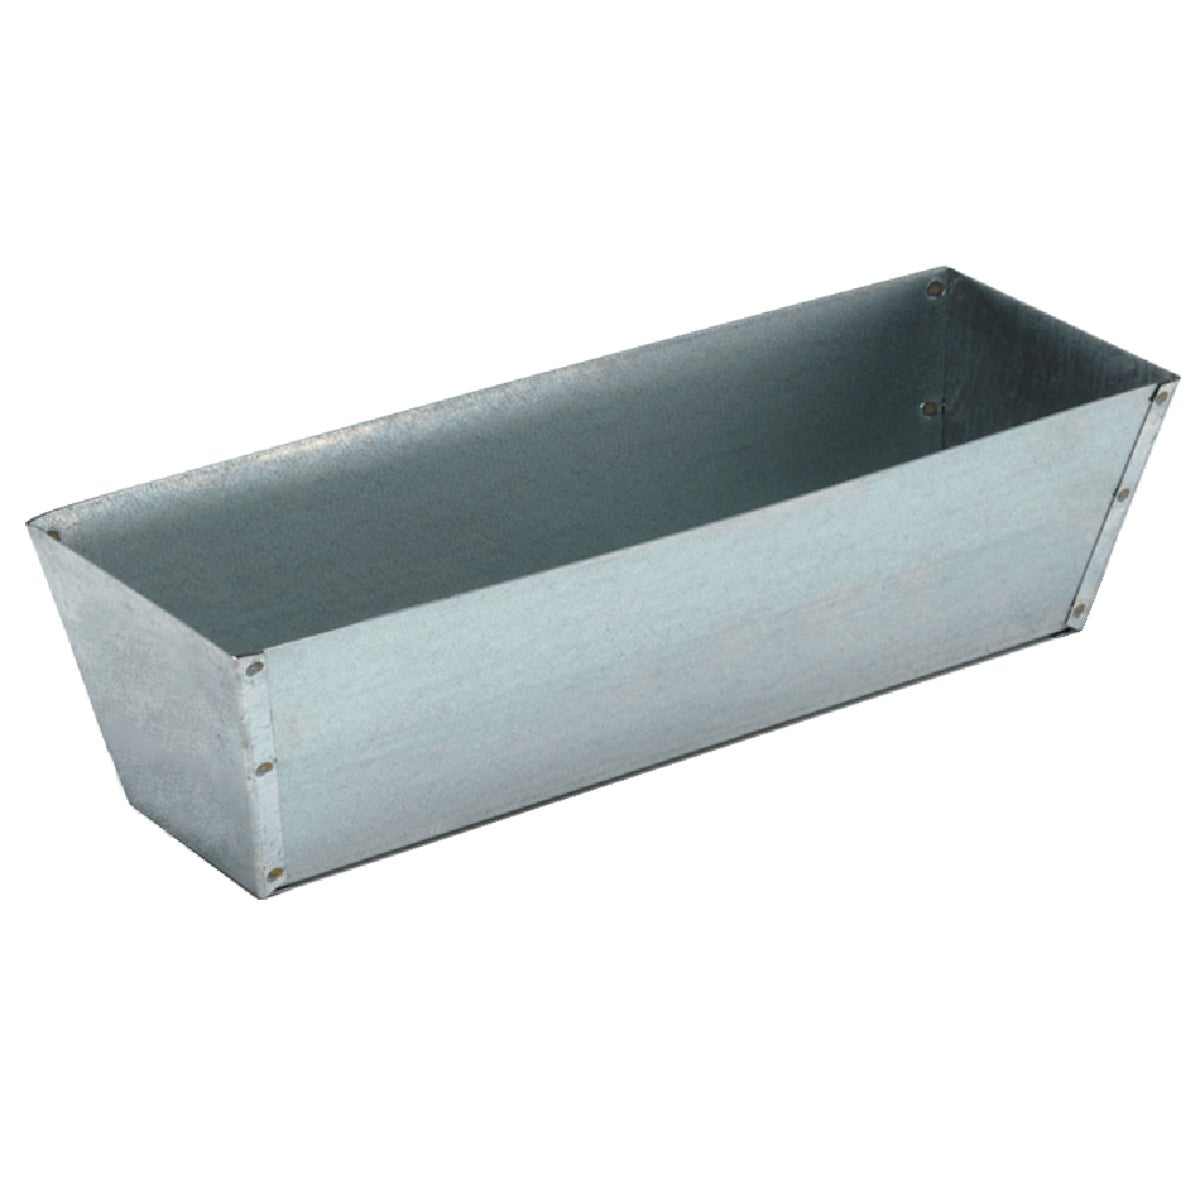 "14"" GALVANIZED MUD PAN - 16392 by Marshalltown Trowel"